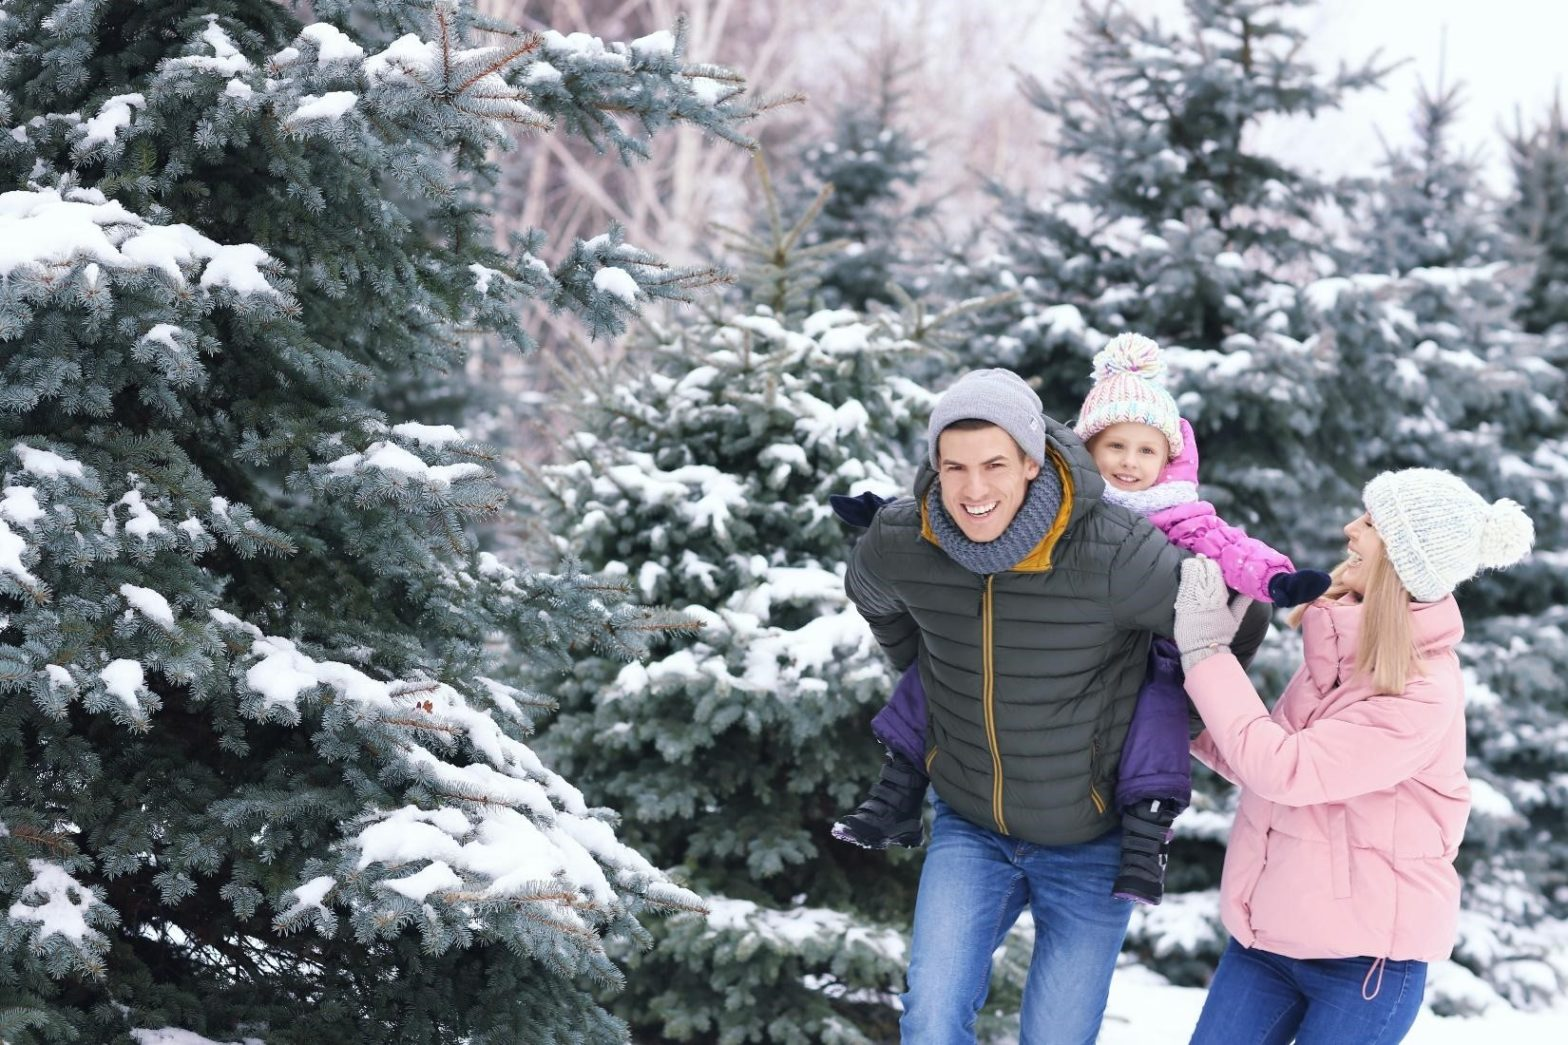 Family playing in snowy woods